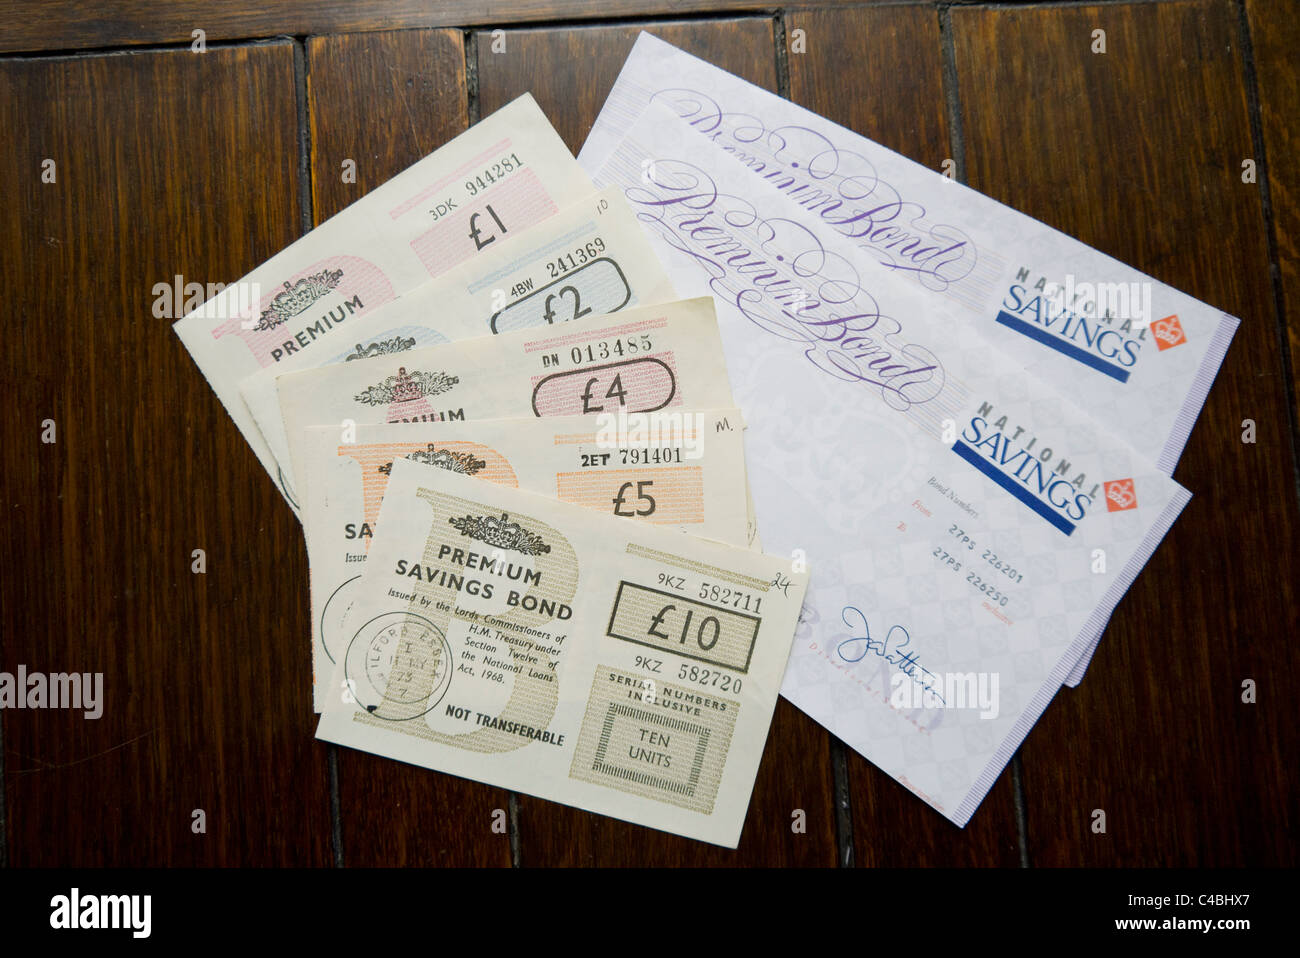 Original  NS&I Premium Bonds, National Savings & Investments from 1958 - Stock Image